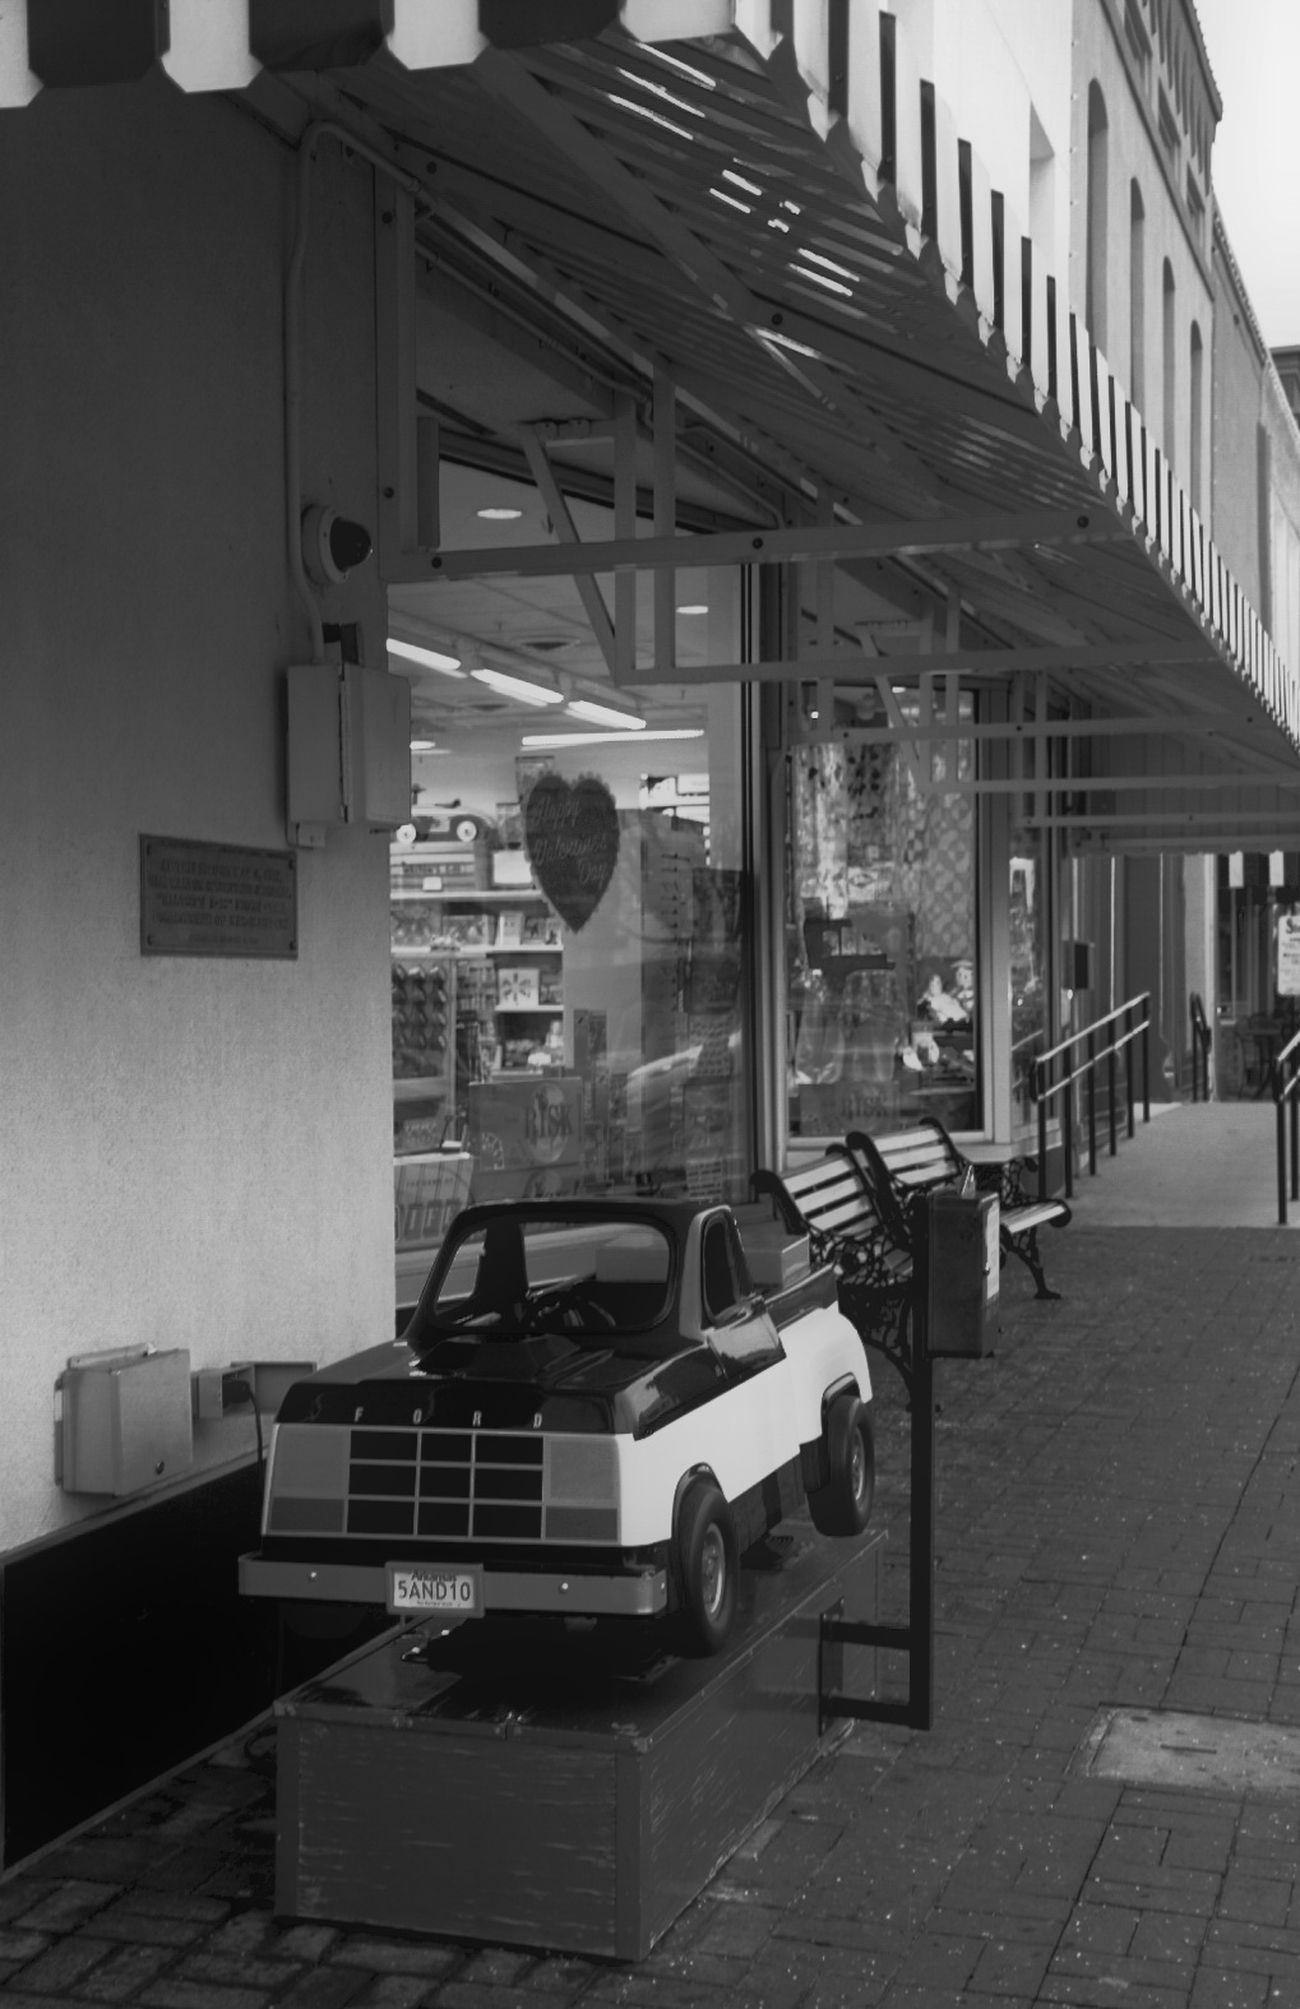 Feeling Nostalgic Check This Out Vintage Black And White Photography Trucks Toys Small Town Quiet Moments First Eyeem Photo Walmart Walmart Family Blackandwhite Black And White Black & White Blackandwhite Photography Black&white Vintage Shopping Vintage Style